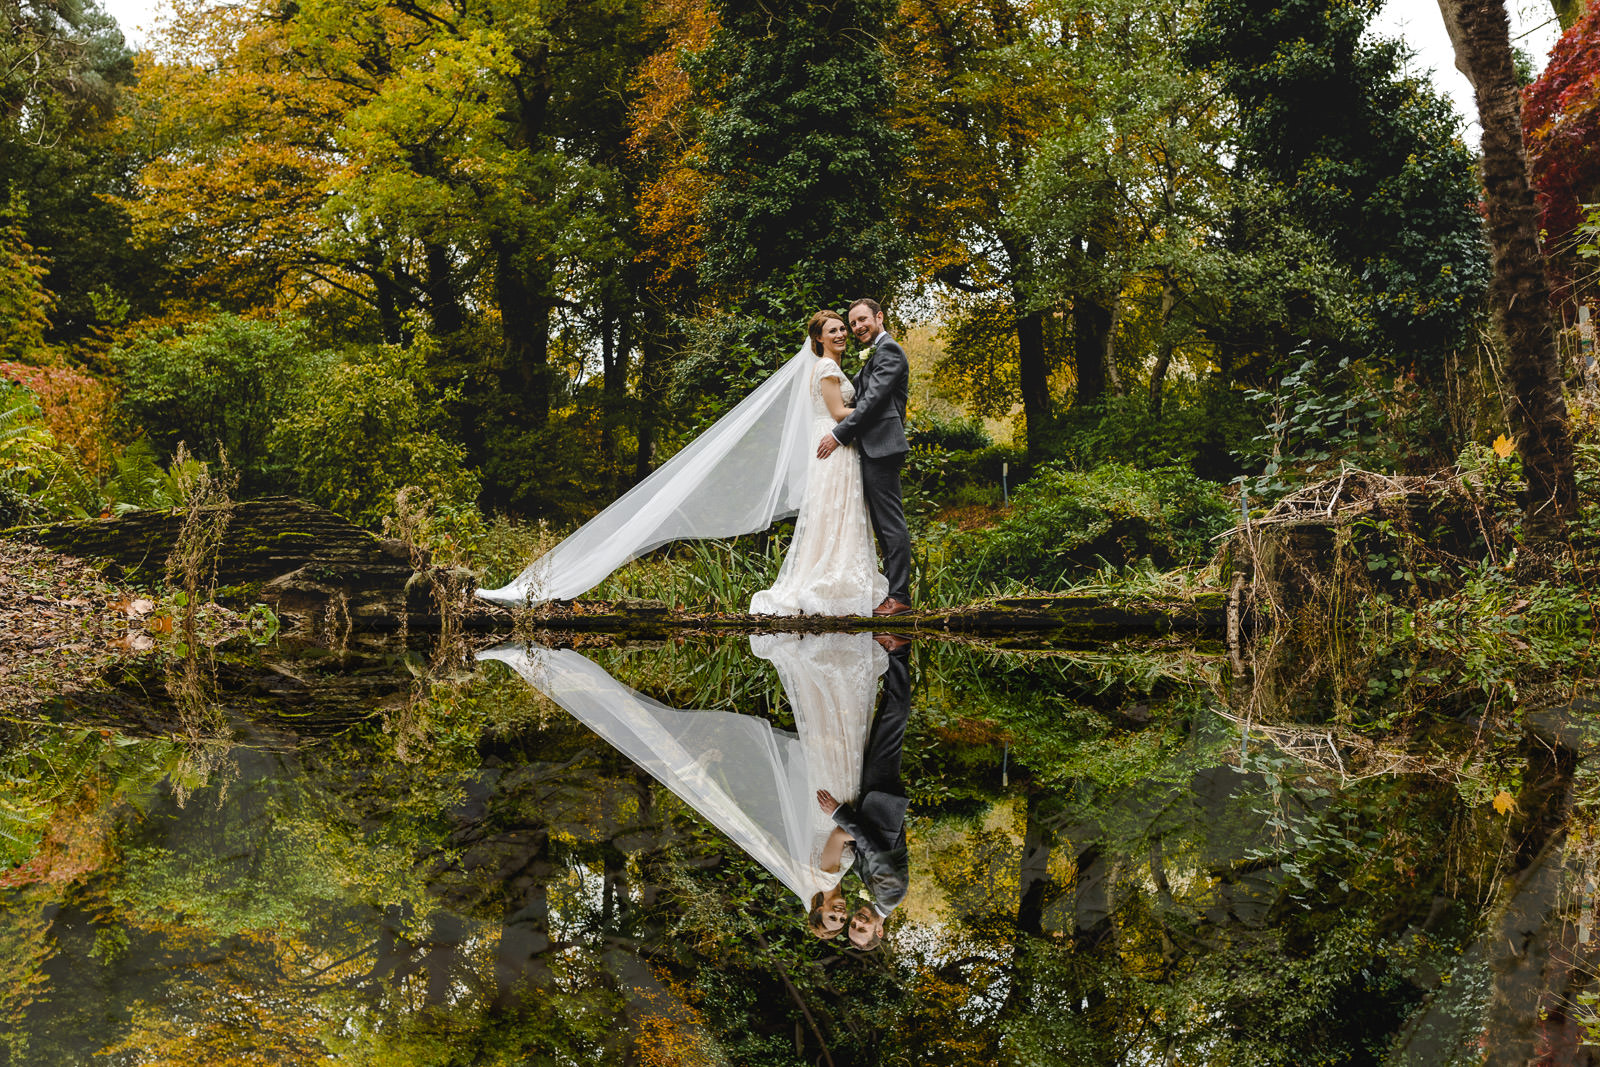 Miskin Manor Wedding Photography - Art by Design Photography - Bride and Groom